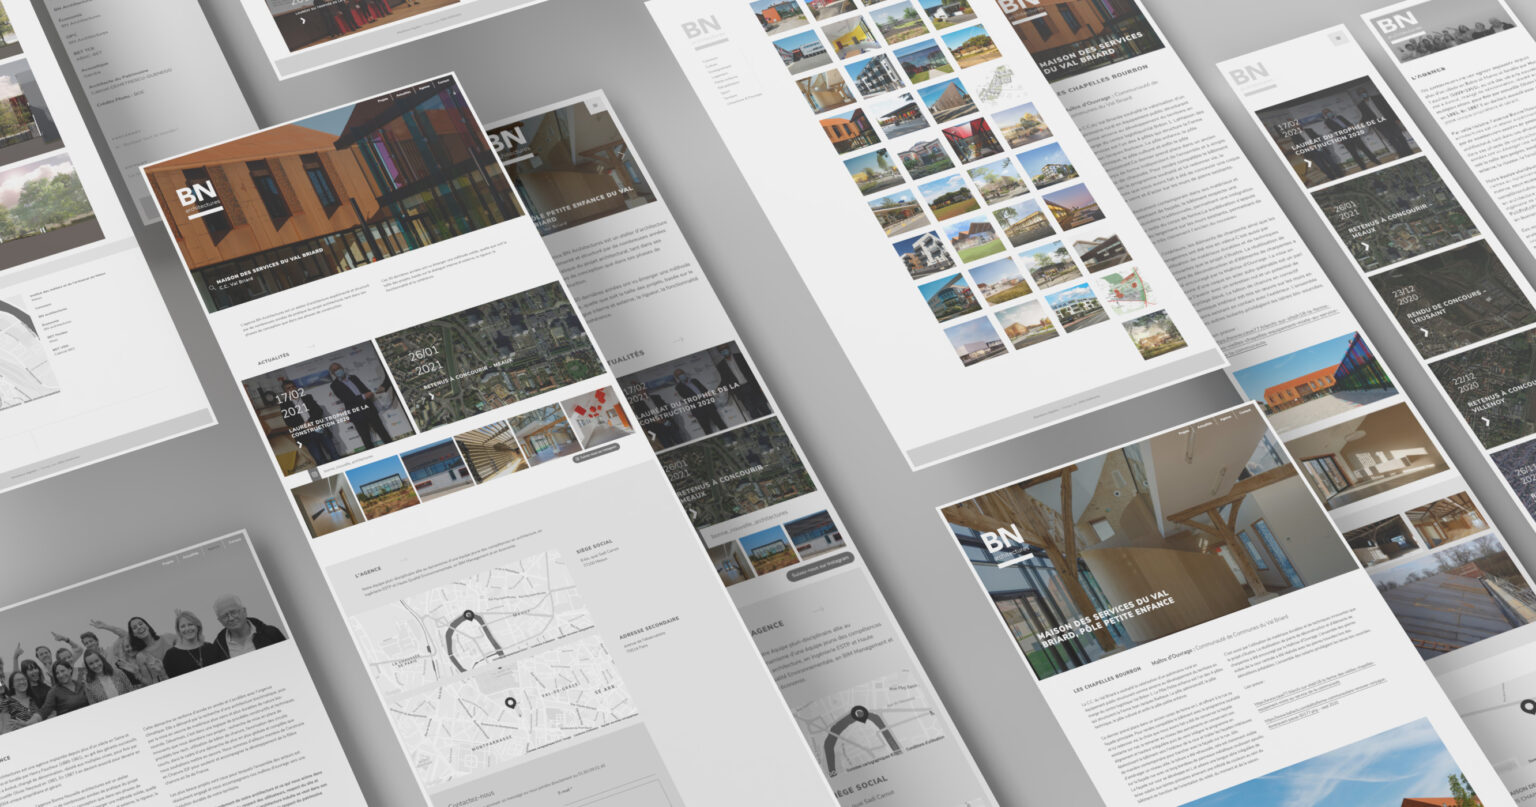 Bn architectures pages web mockups